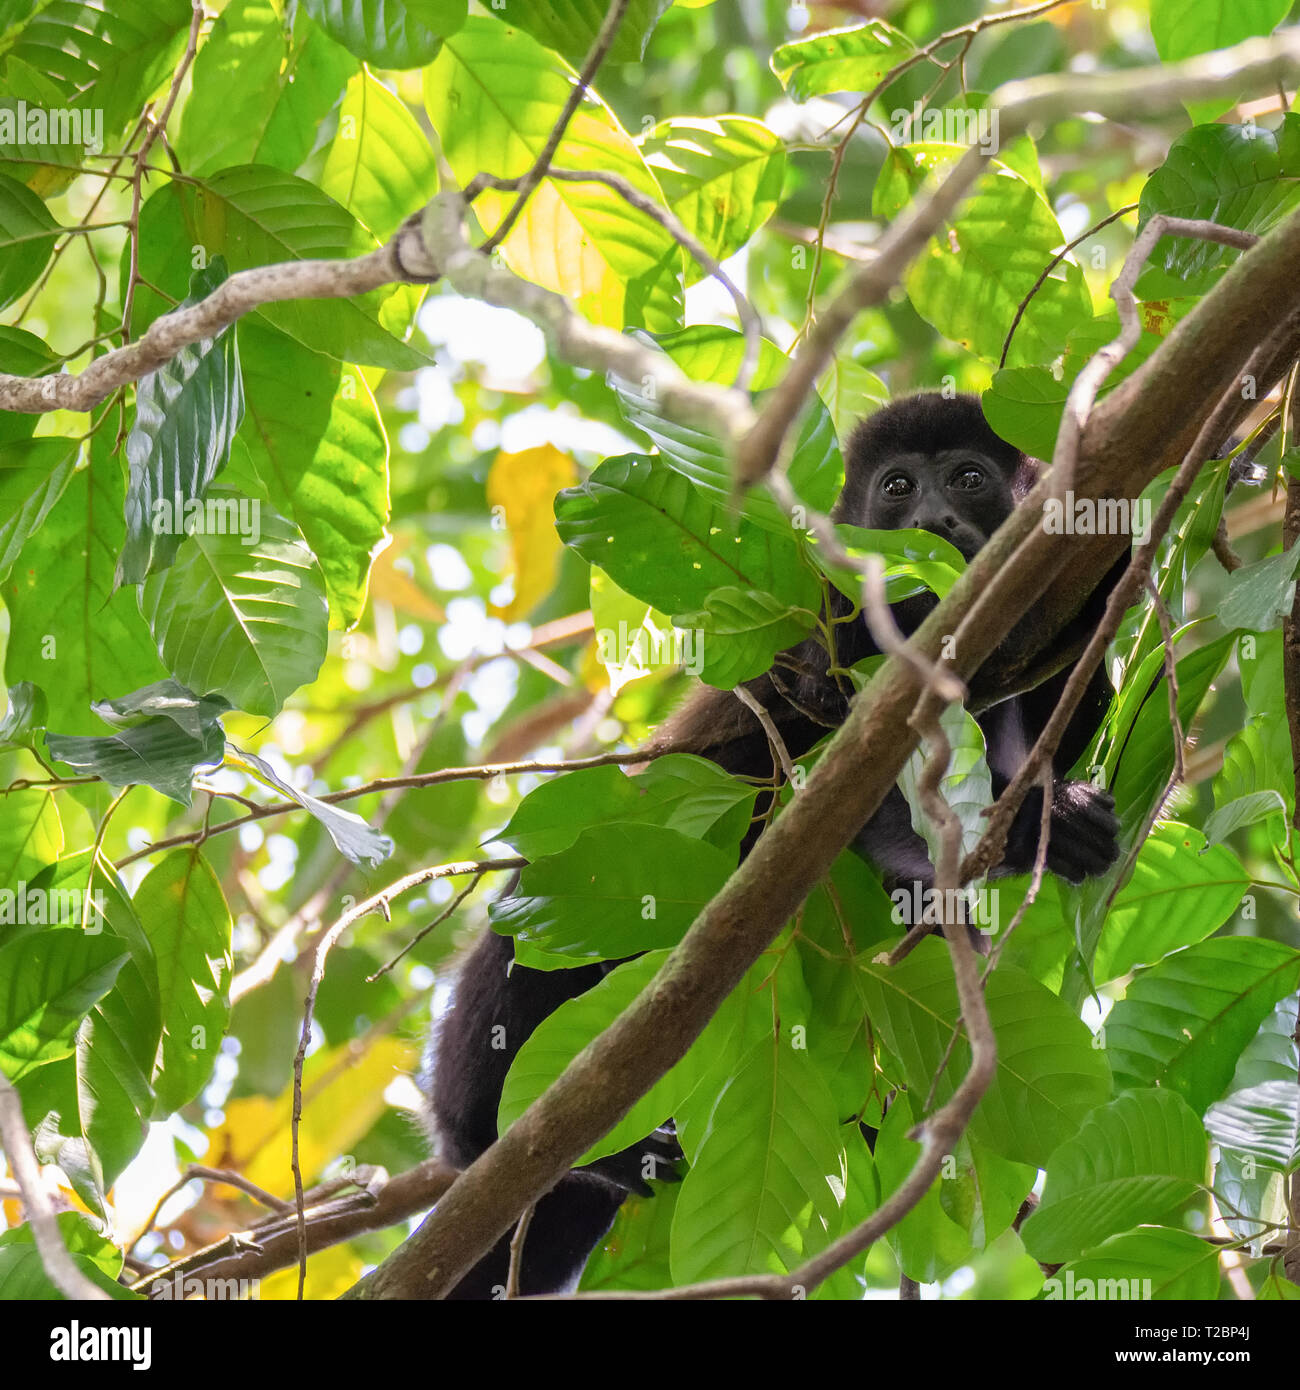 Hiding behind the leaves of a tree a howler monkey looks down with concern written in its eyes - Stock Image